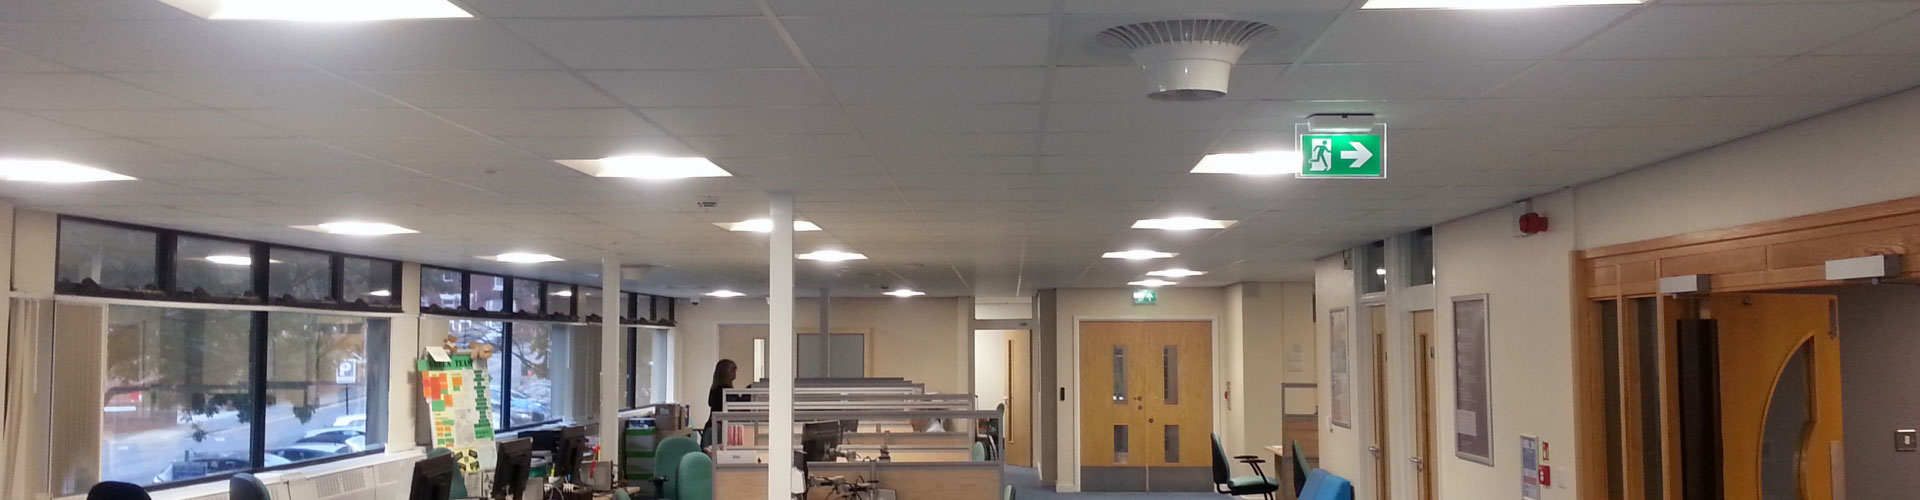 Airius Cooling Fans Maintaining Comfort in an Office